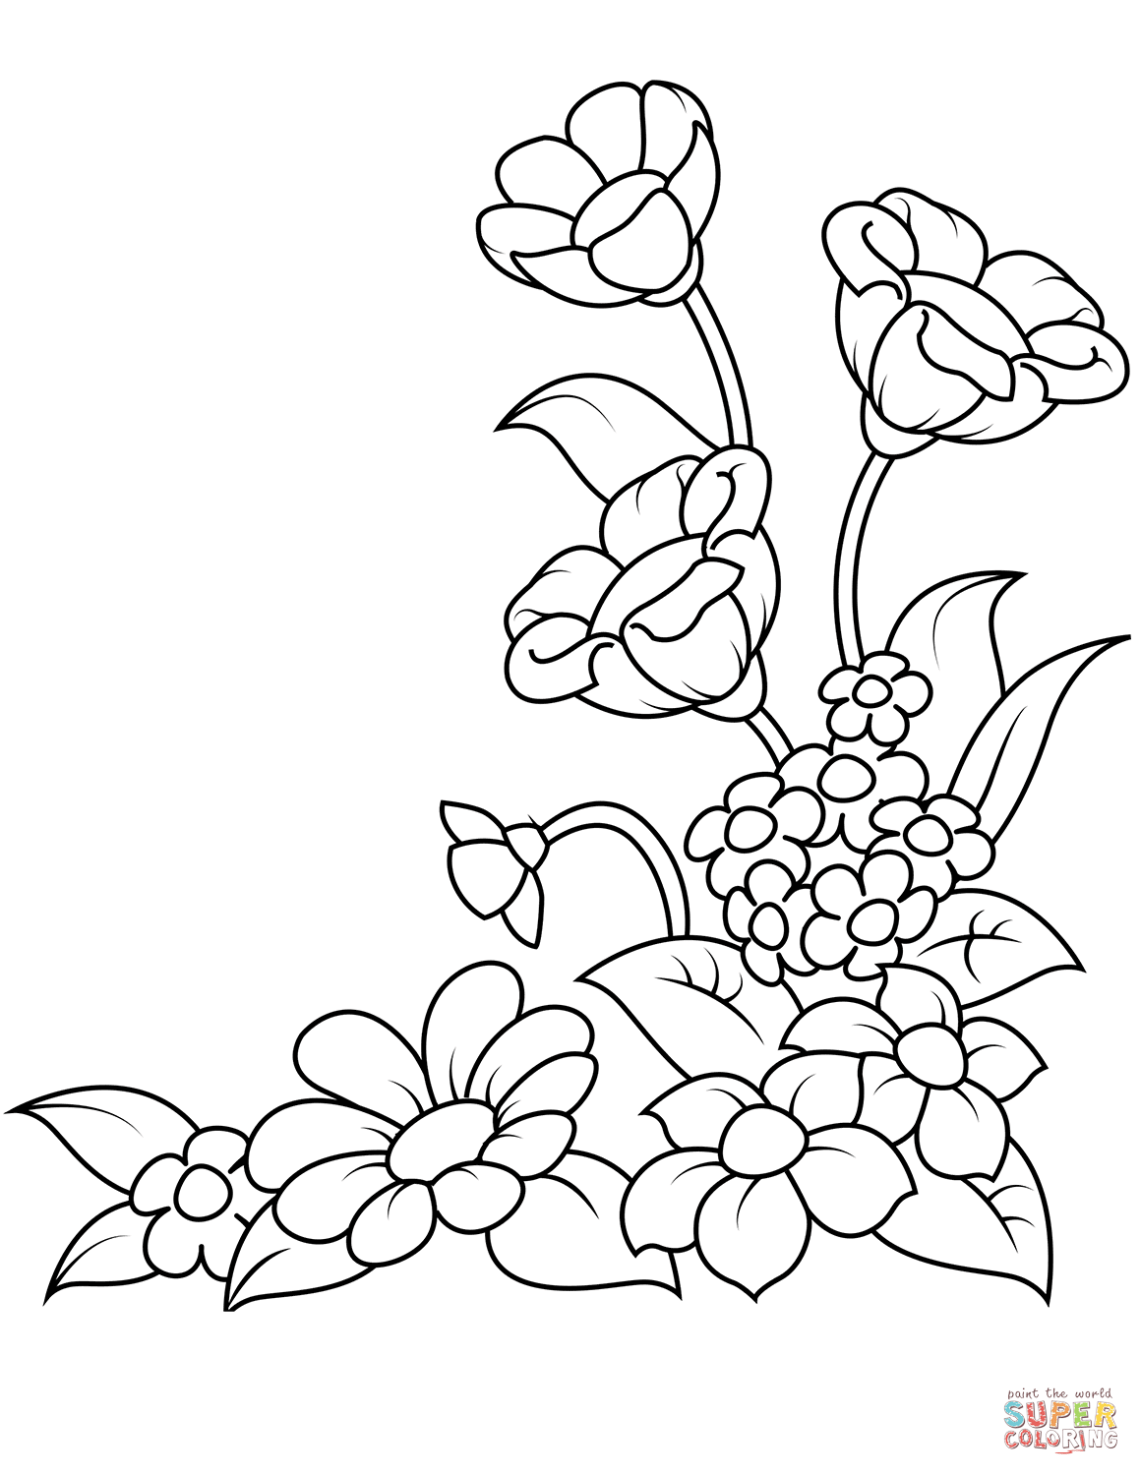 Spring Flowers coloring page | Free Printable Coloring Pages | colouring pages flowers printable